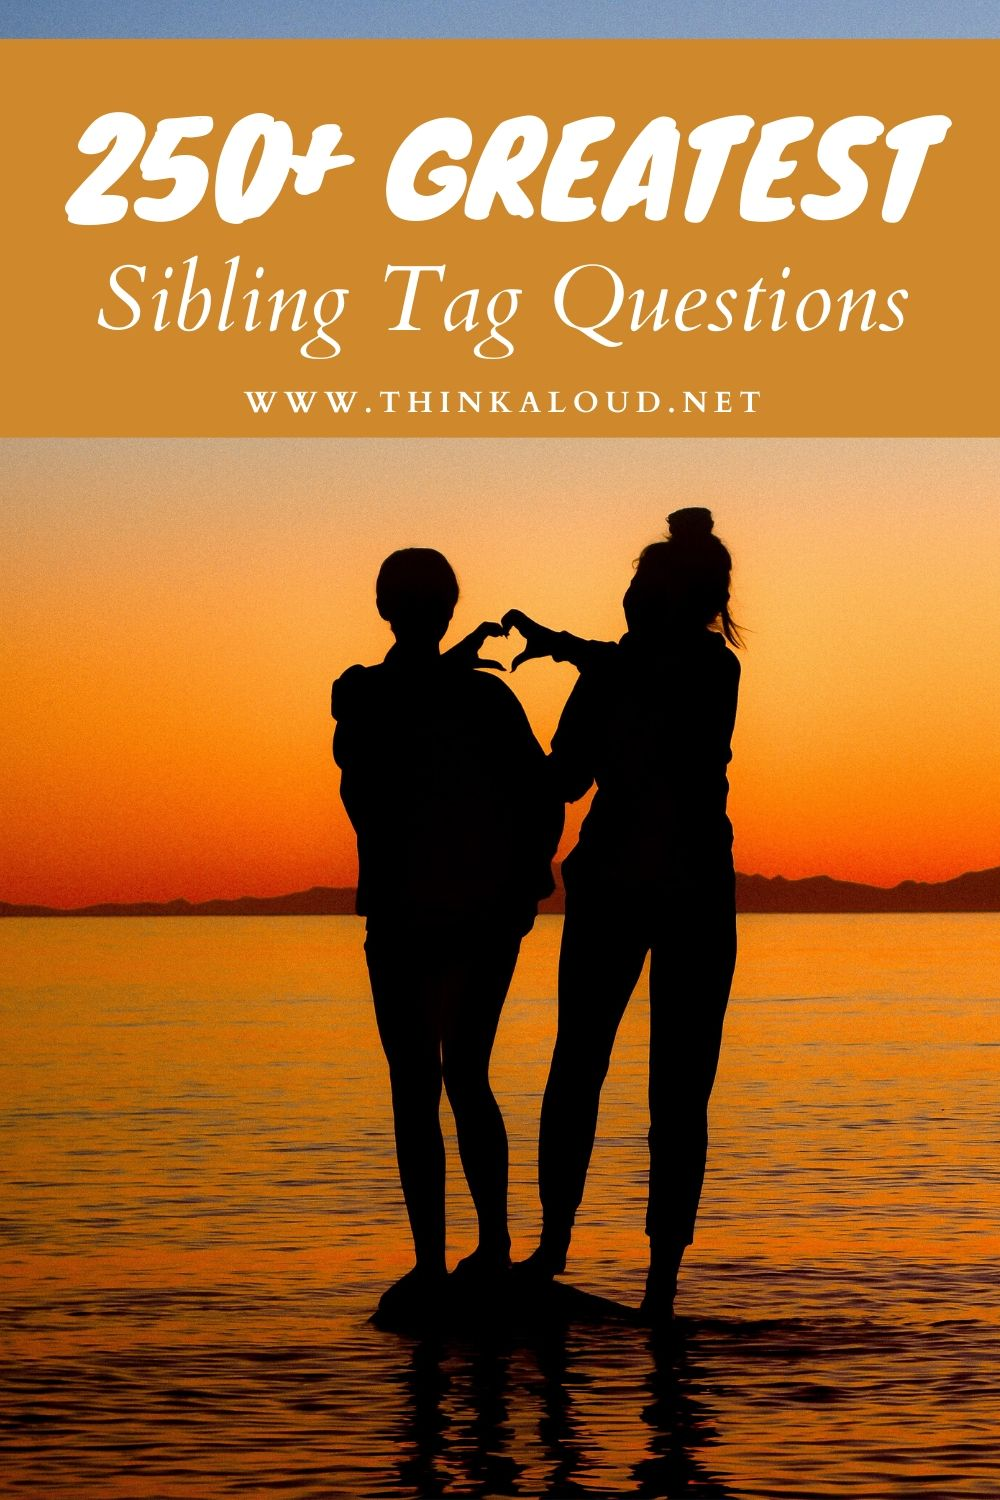 250+ Greatest Sibling Tag Questions